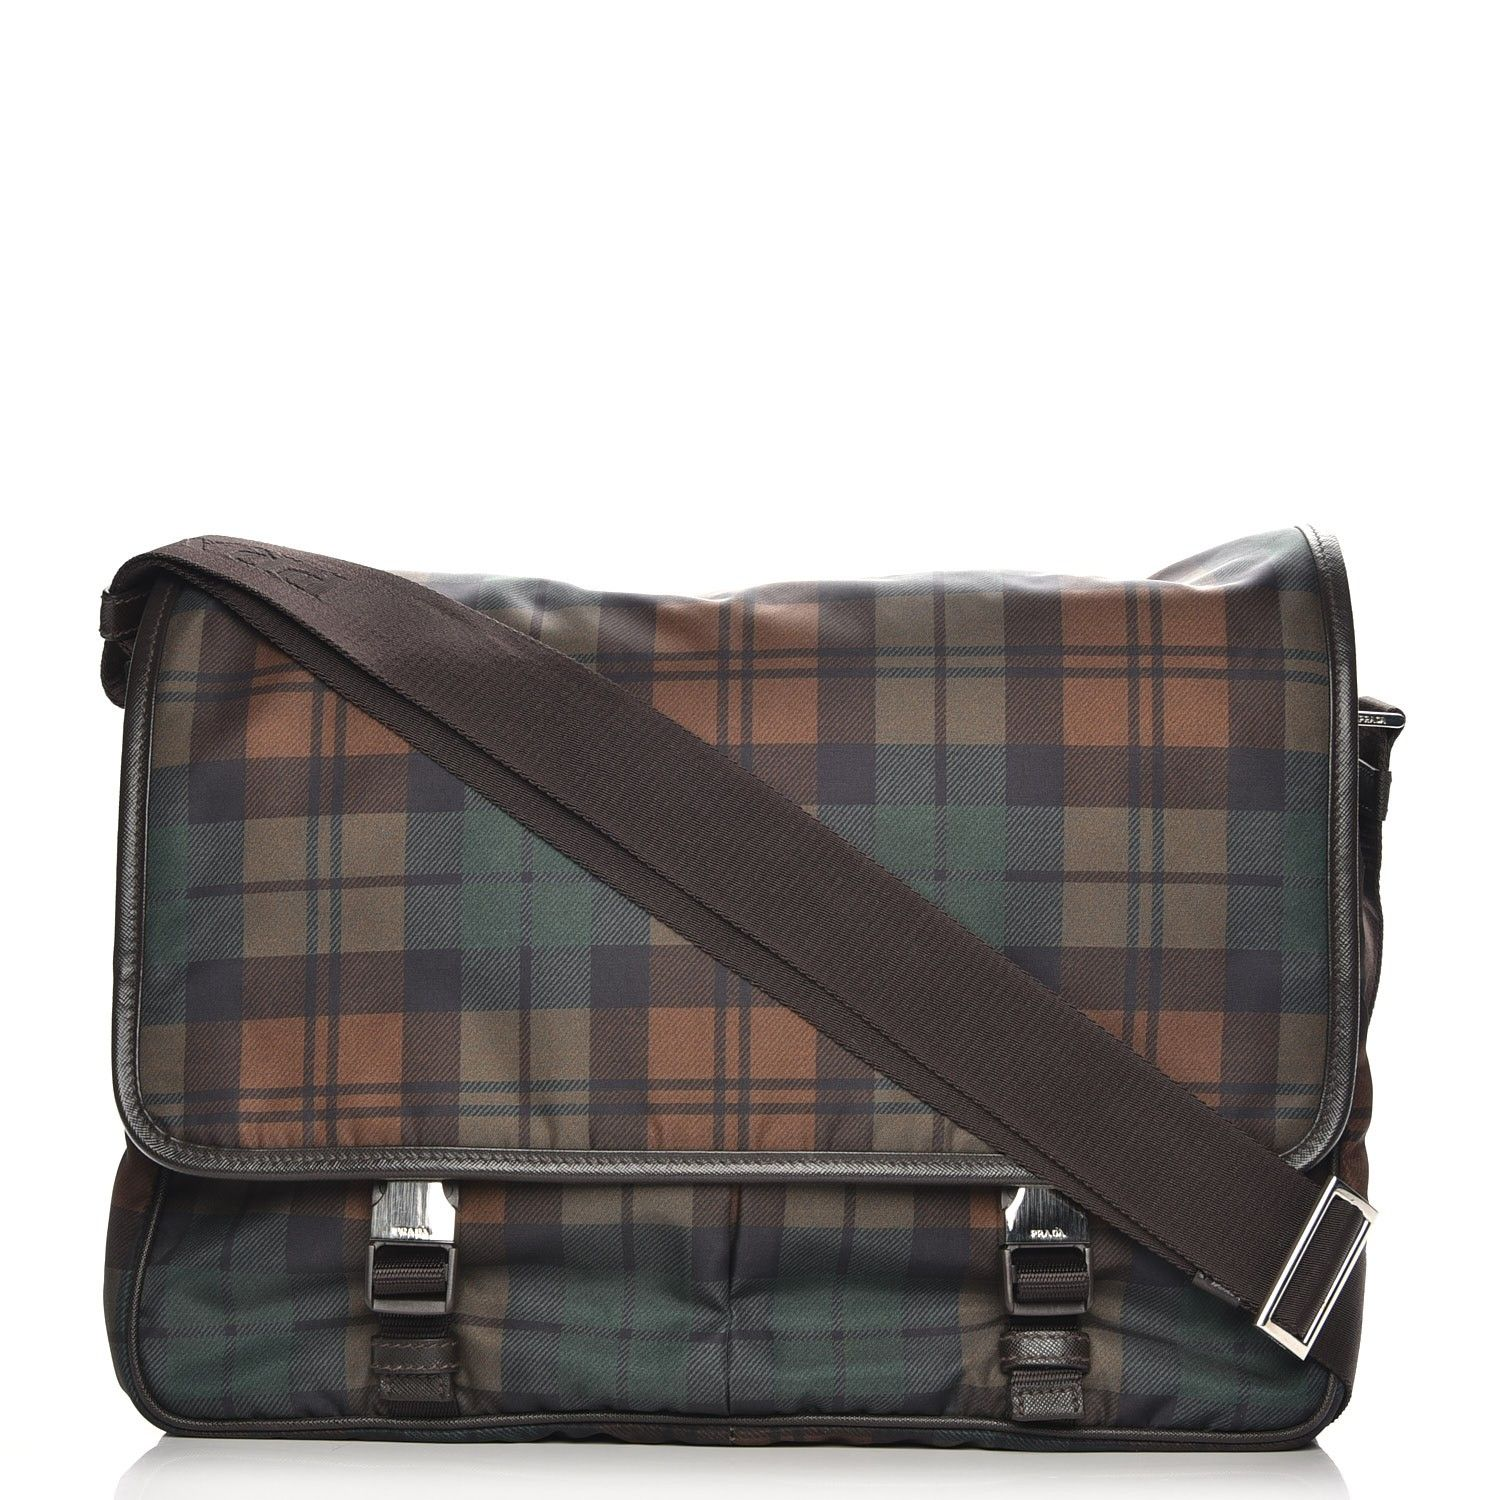 9f17f61170 This is an authentic PRADA Tessuto Scozzes Saffiano Messenger Bag in Brown  Watch. This chic